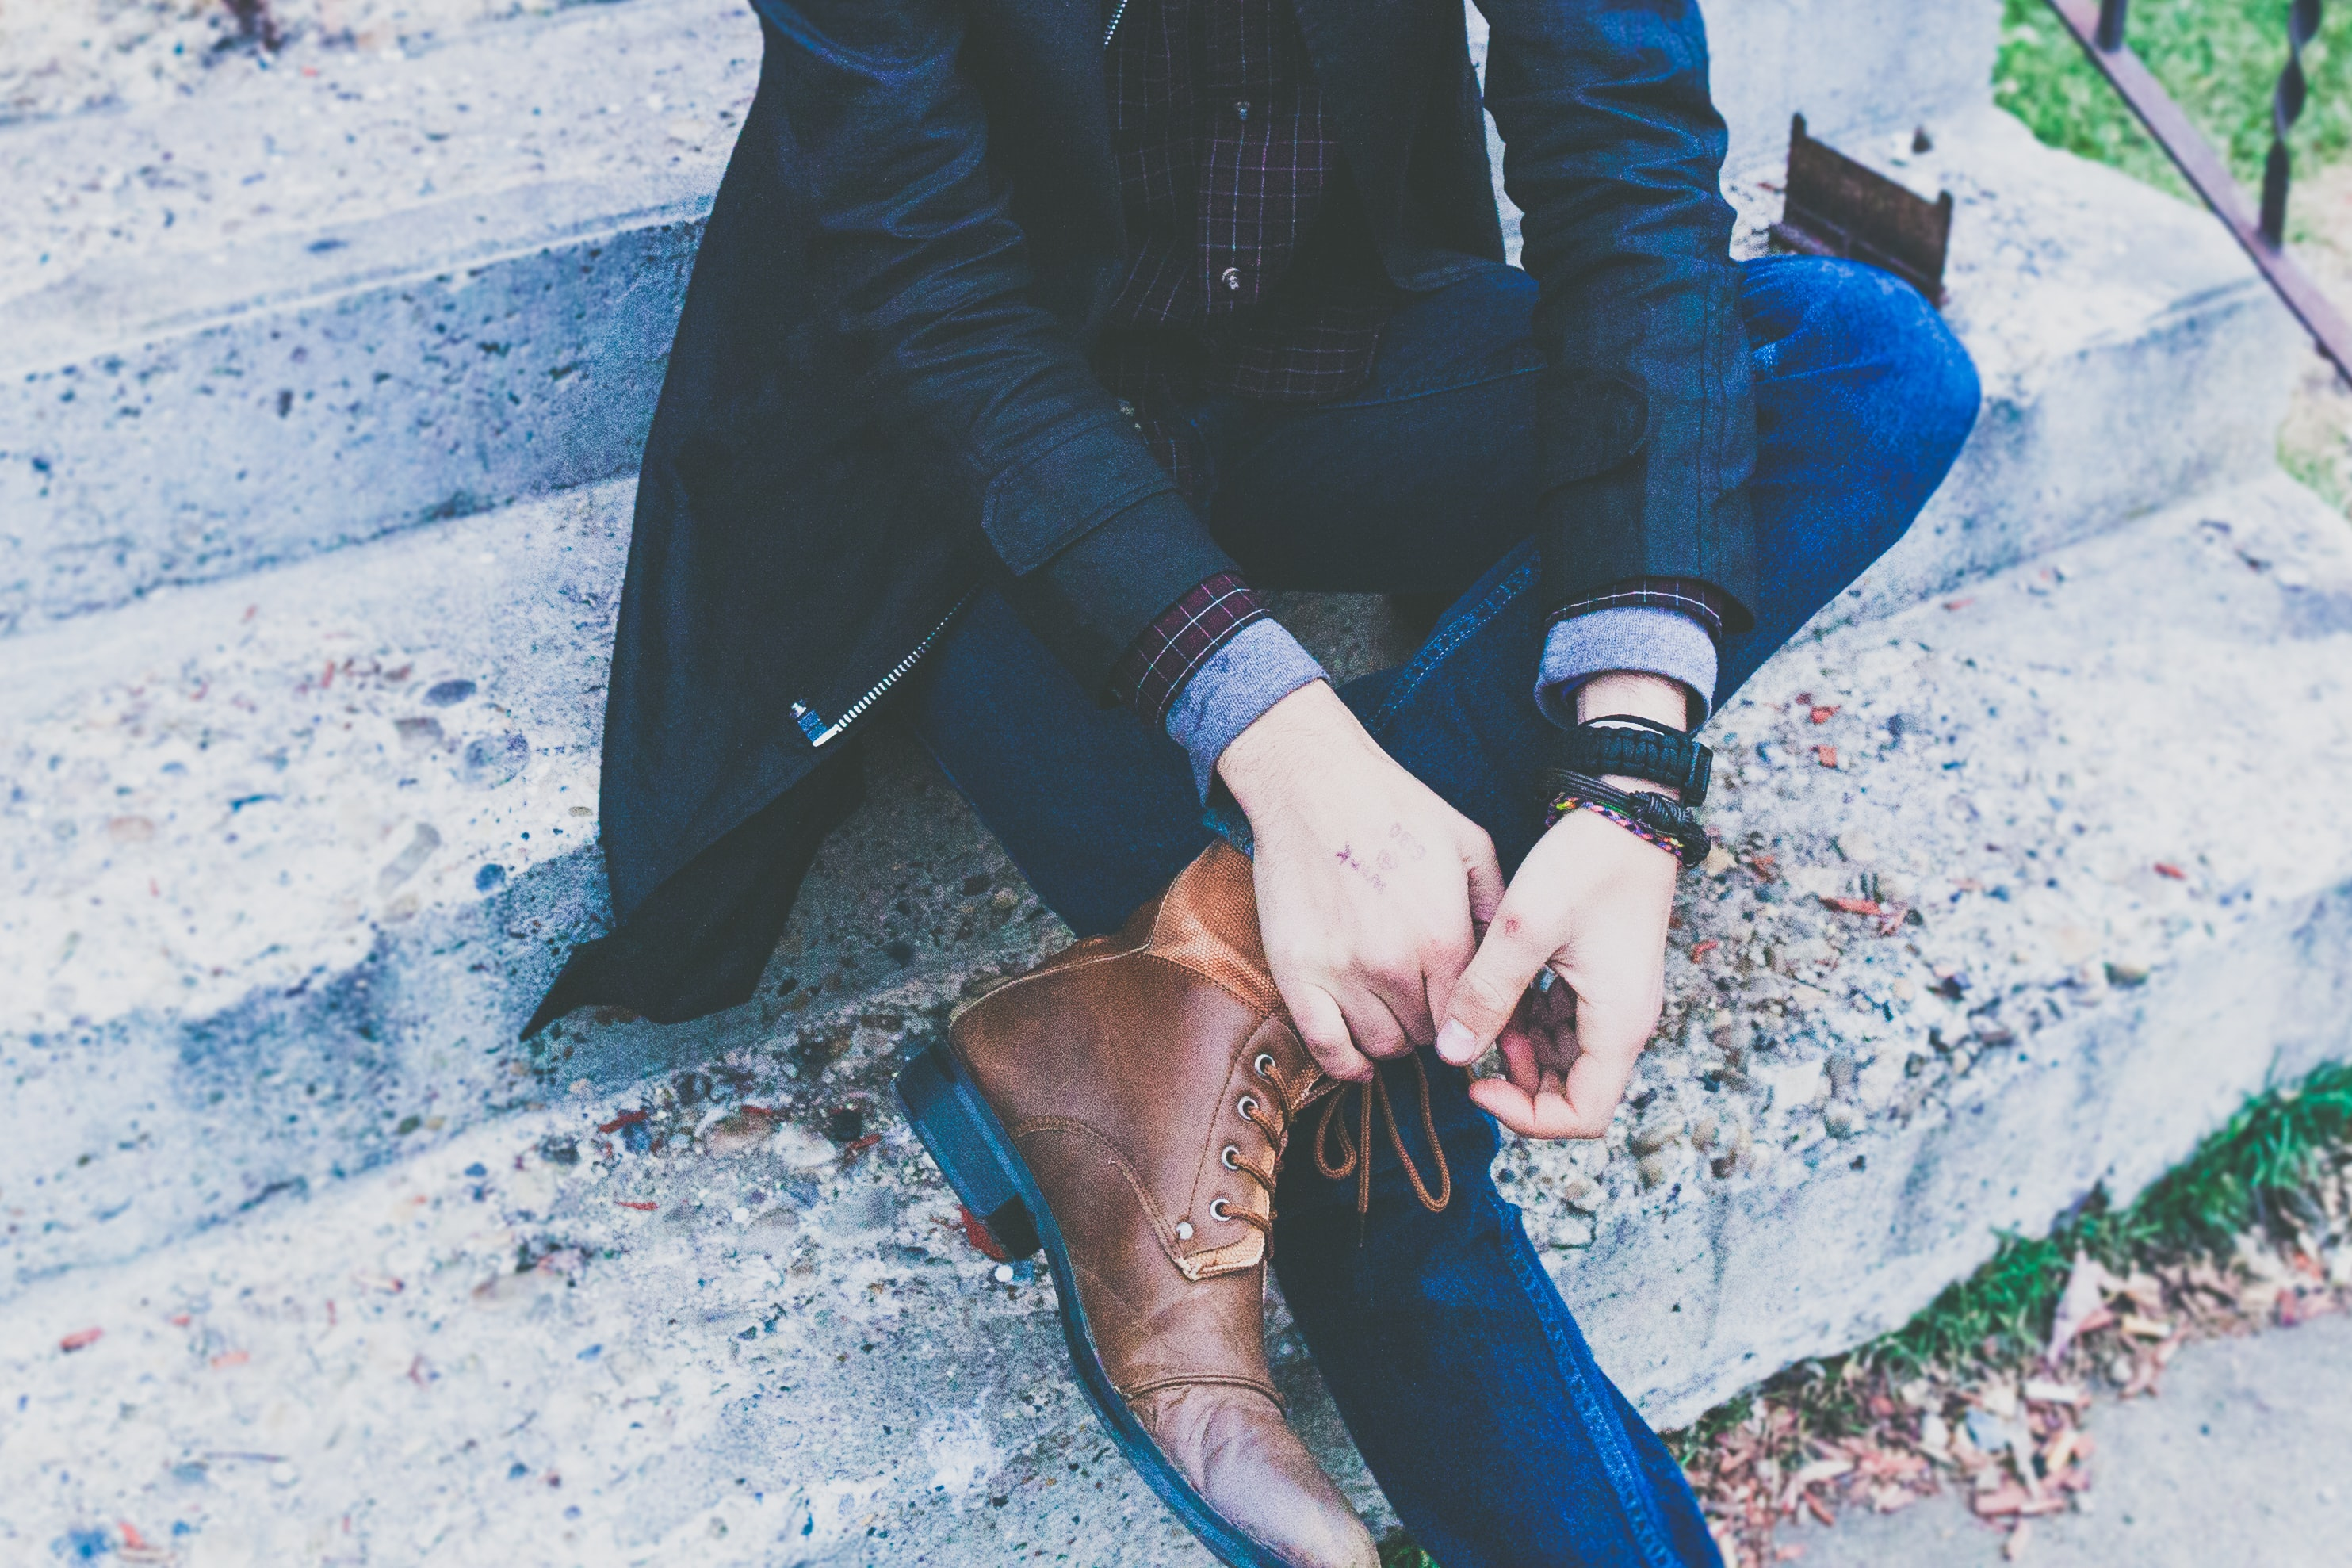 A man in an elegant jacket and jeans tying his leather shoes while sitting on stairs